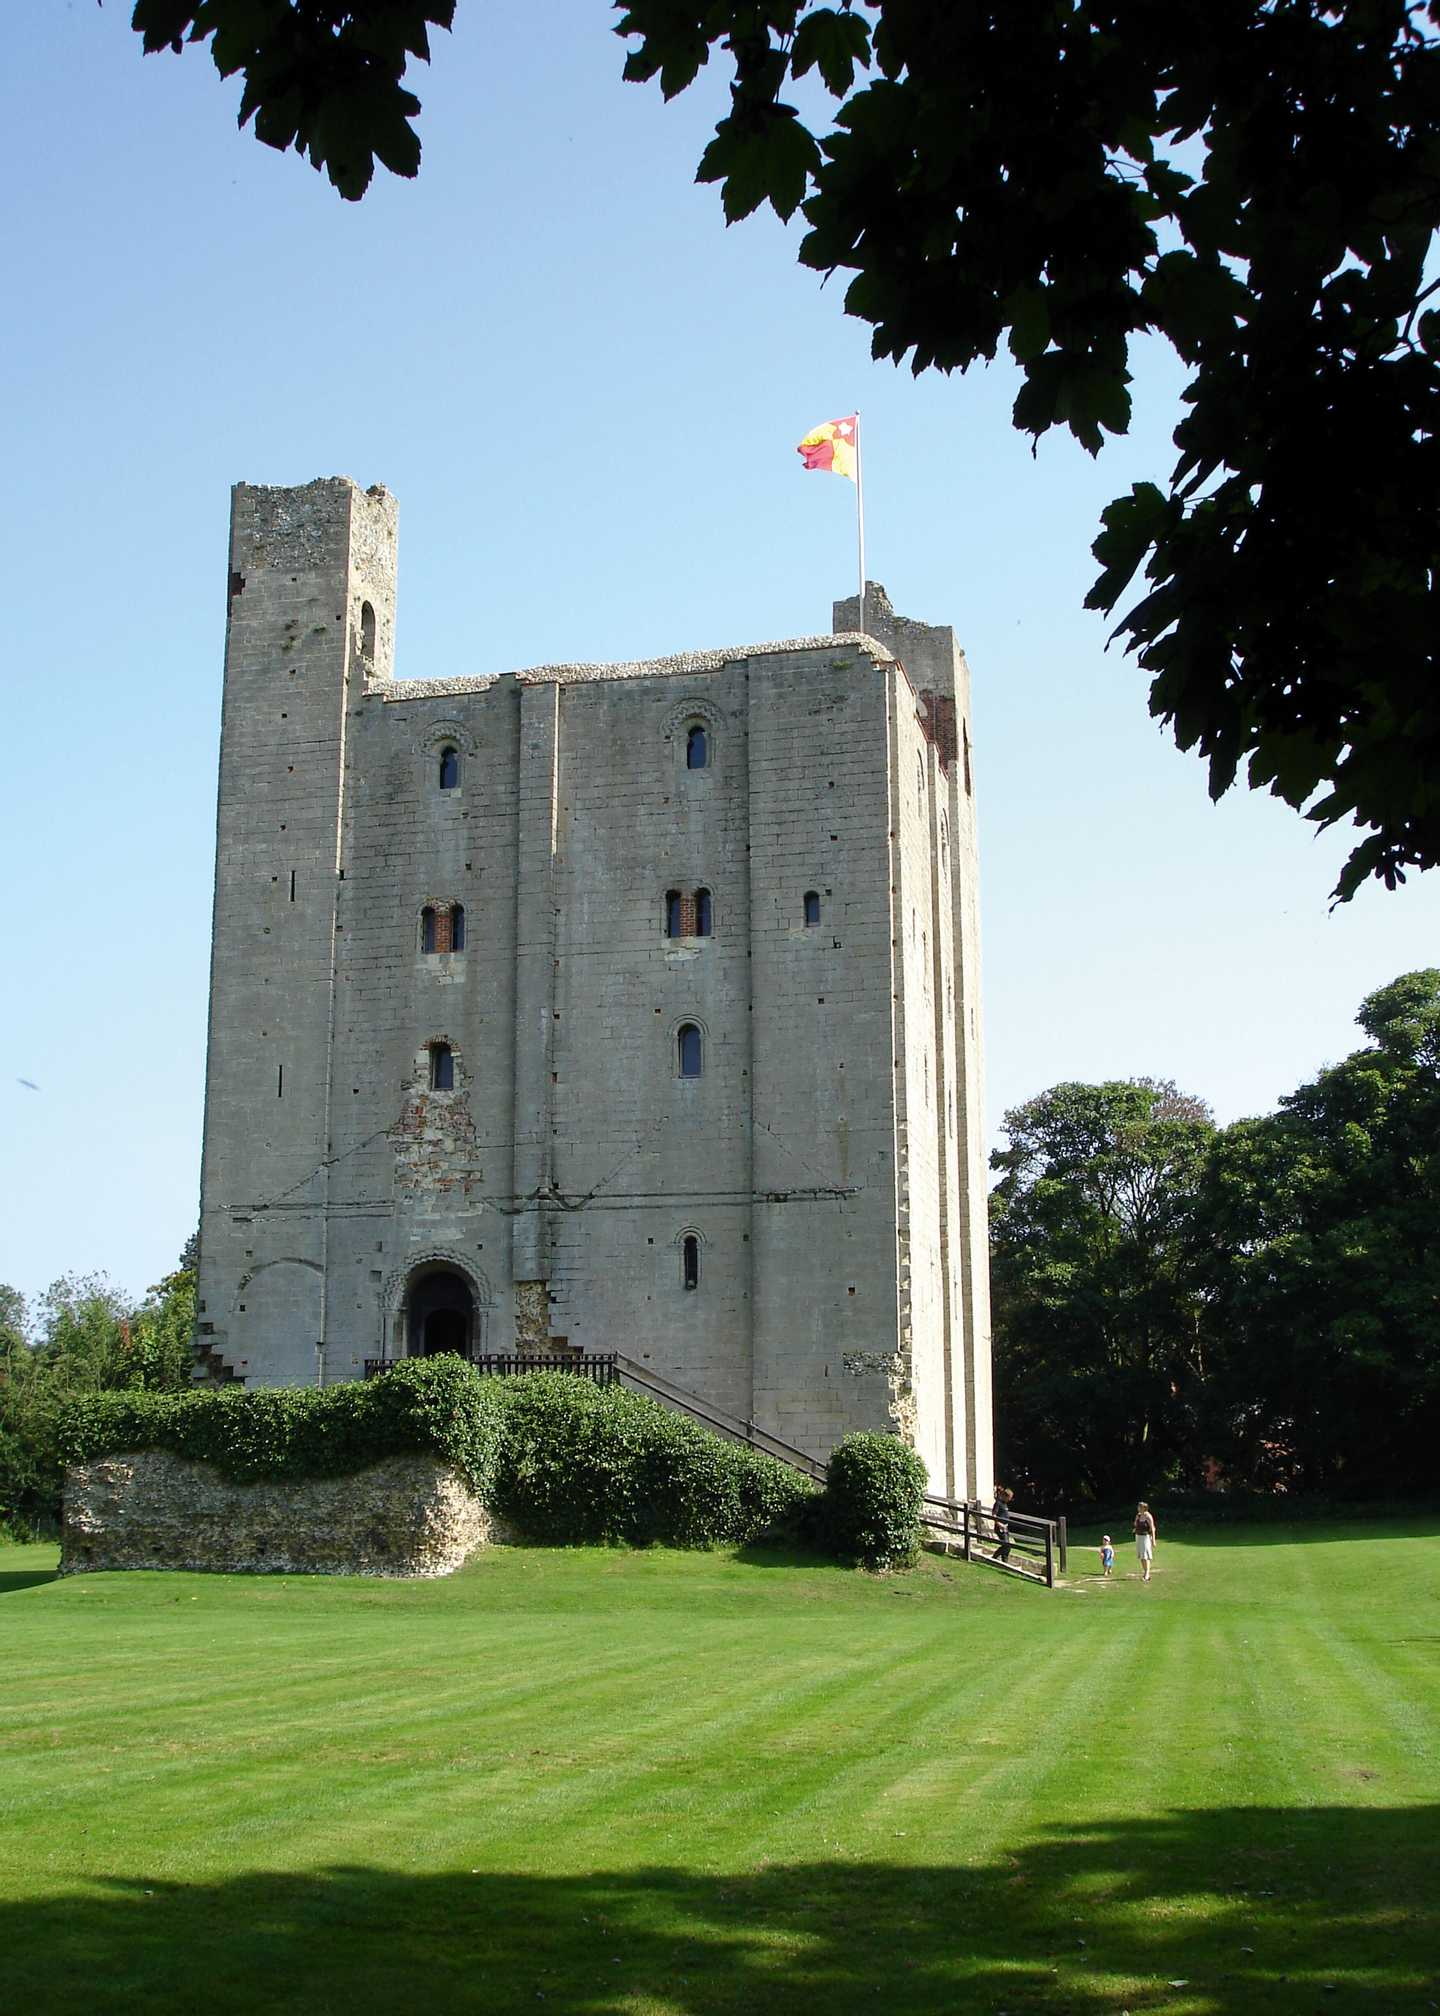 Exterior of Hedingham Castle